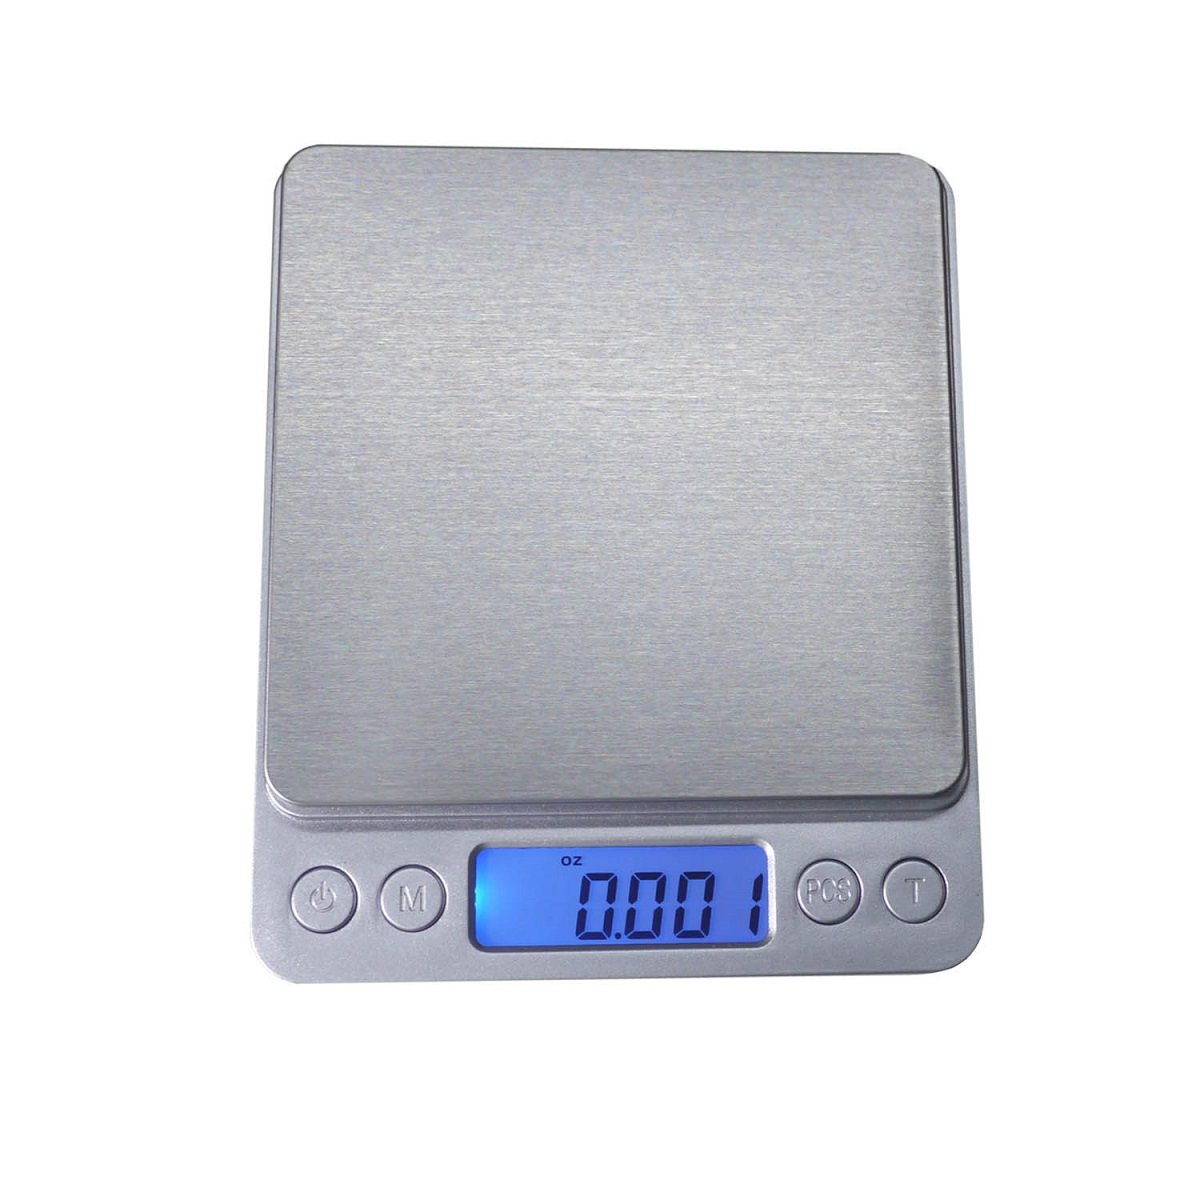 Home Use Digital Multifunction Food Kitchen Scale with Back-Lit LCD Display, Portable Pocket Scale, Tare, Hold and PCS Features (3000g x 0.1g/0.003oz) (Silver) (2 Lids Included)